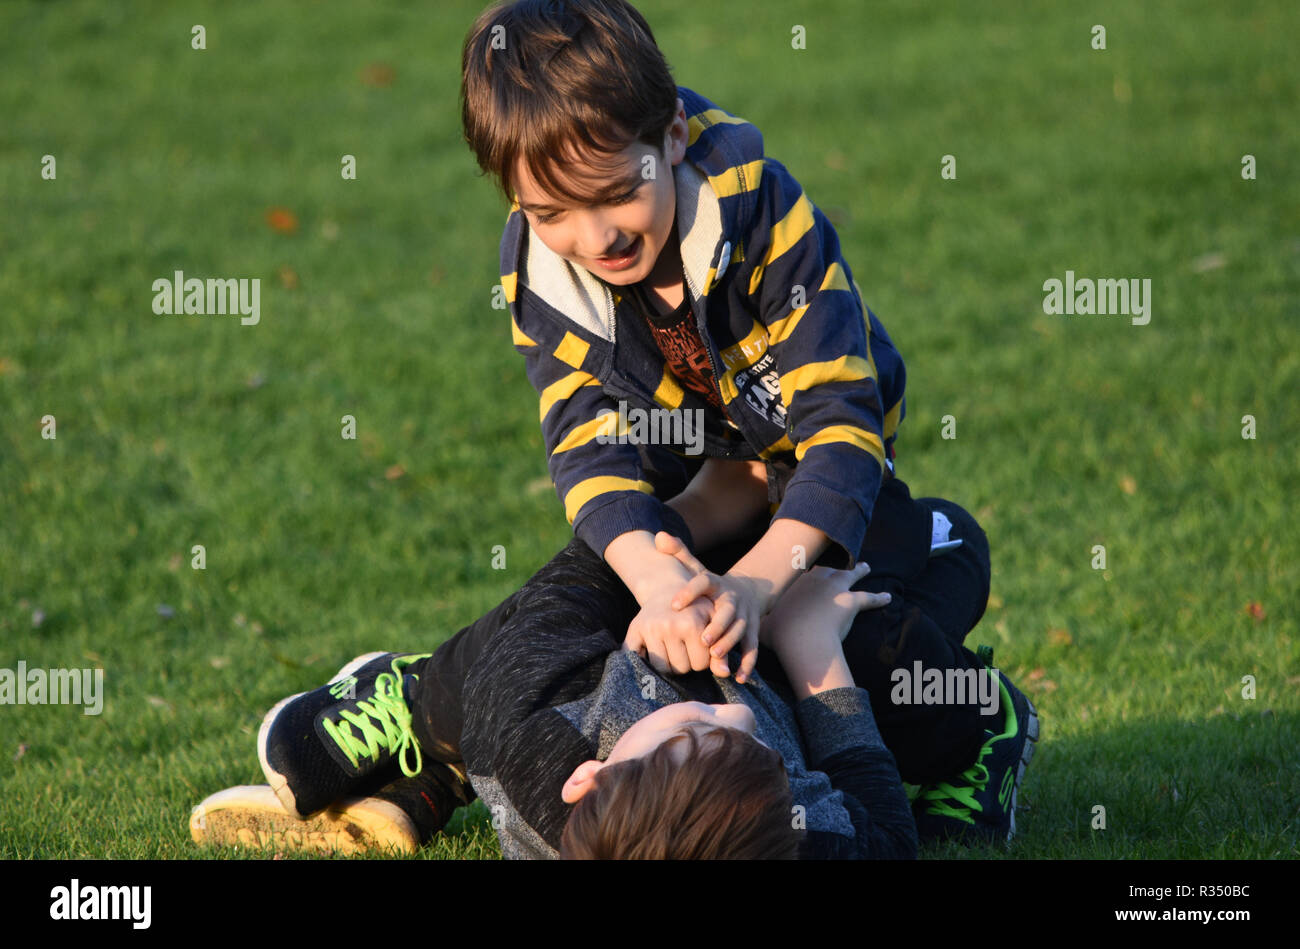 Pre teen young boys fighting - Stock Image